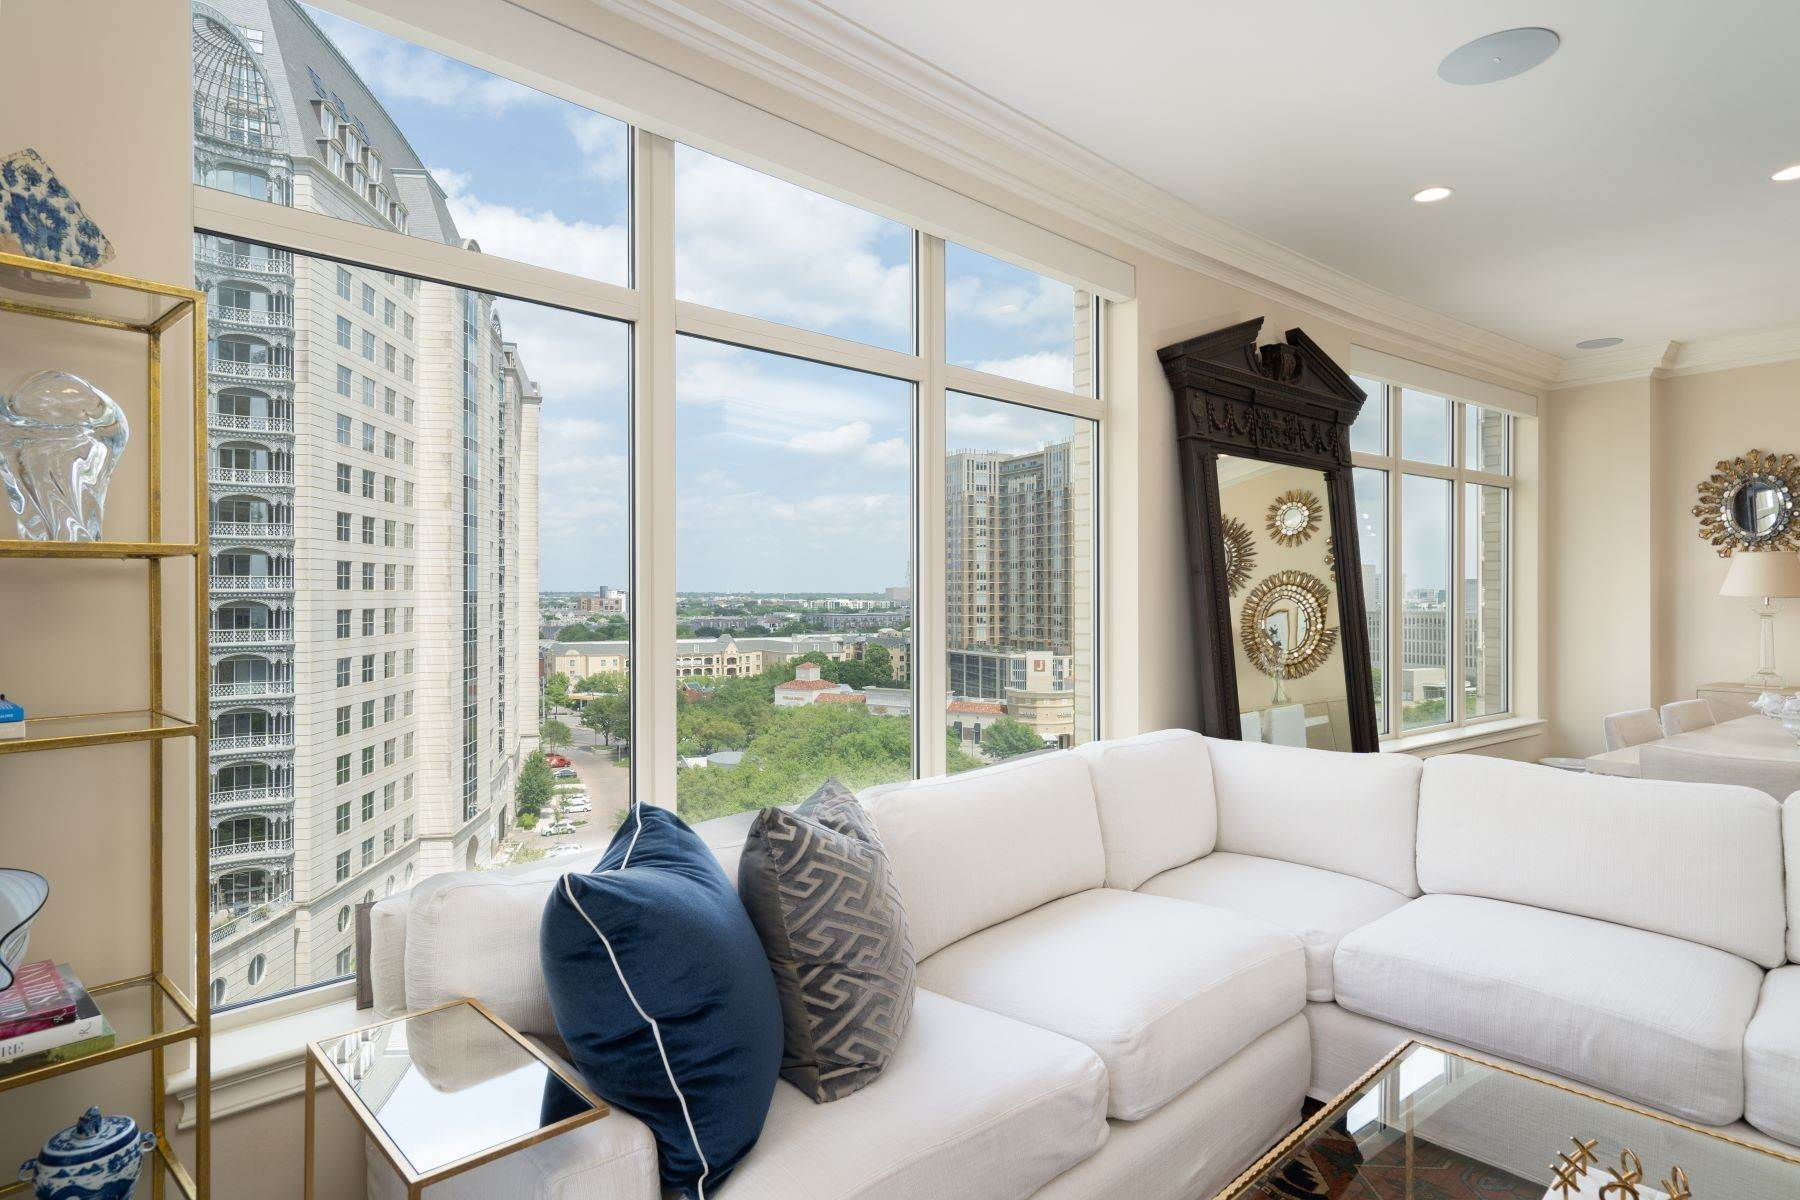 2. Condominiums for Sale at Ritz-Carlton Luxury and Convenience 2555 N. Pearl Street, #1004 Dallas, Texas 75201 United States